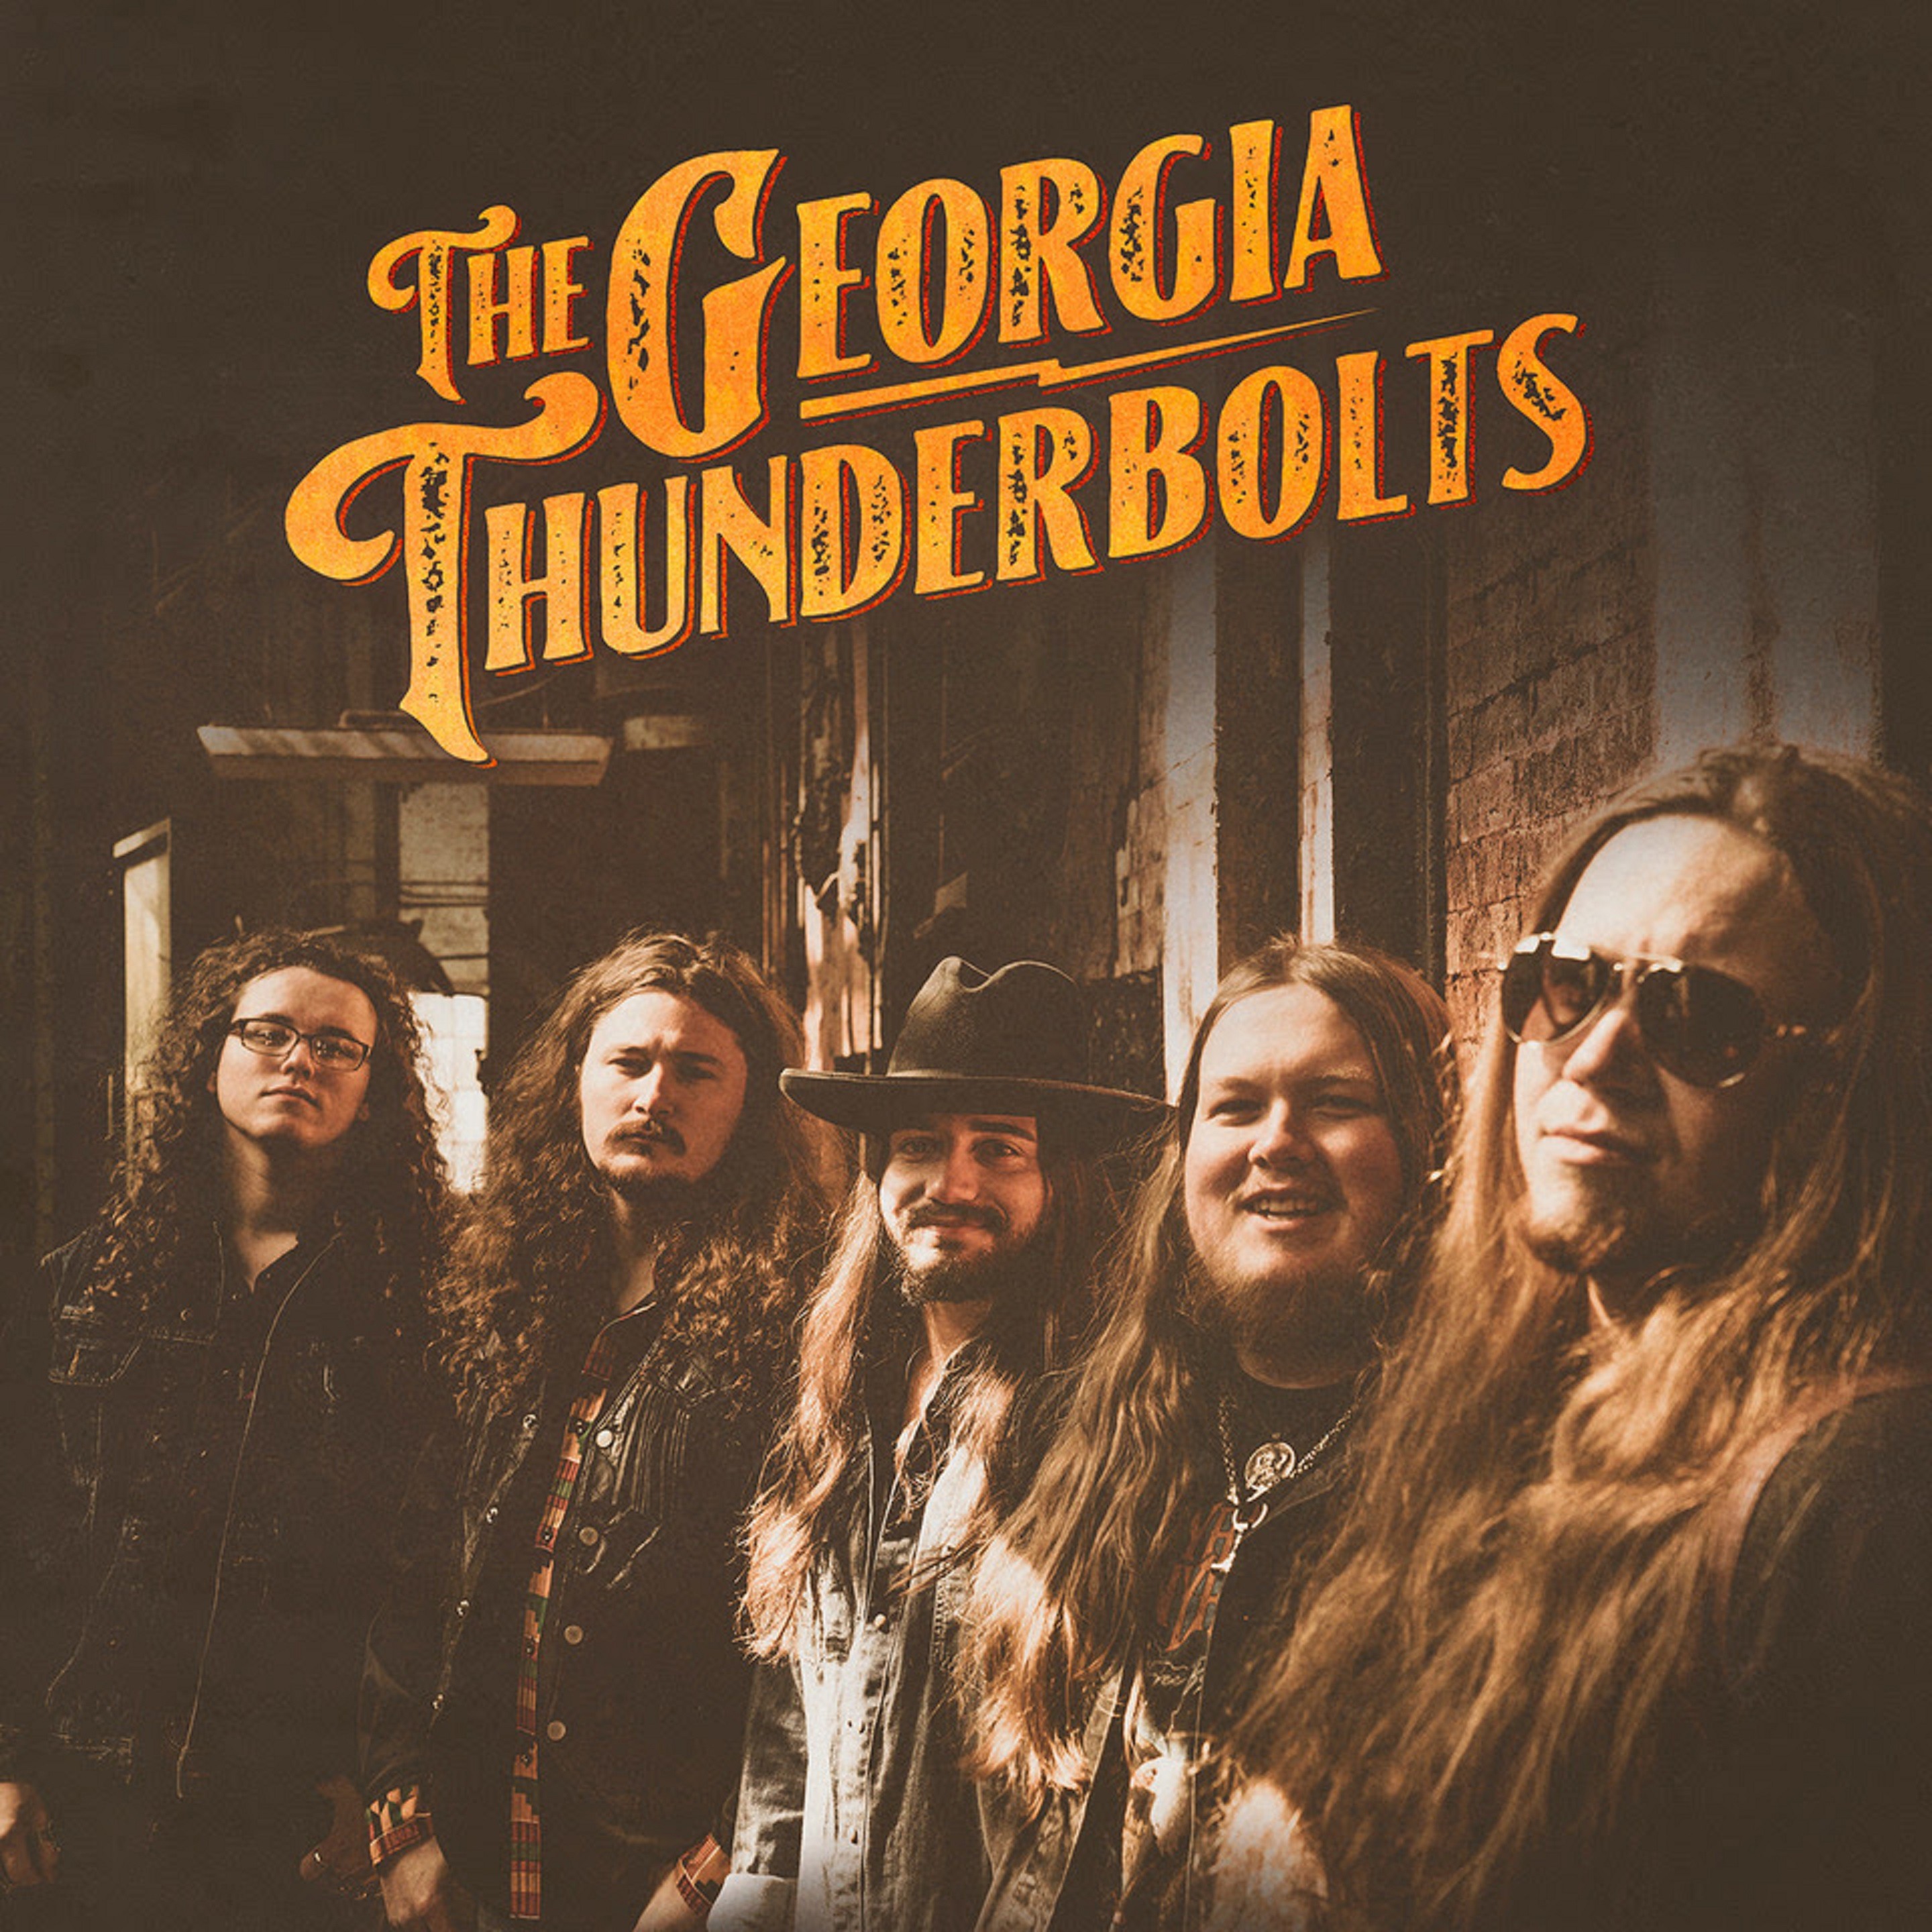 The Georgia Thunderbolts – Debut Album